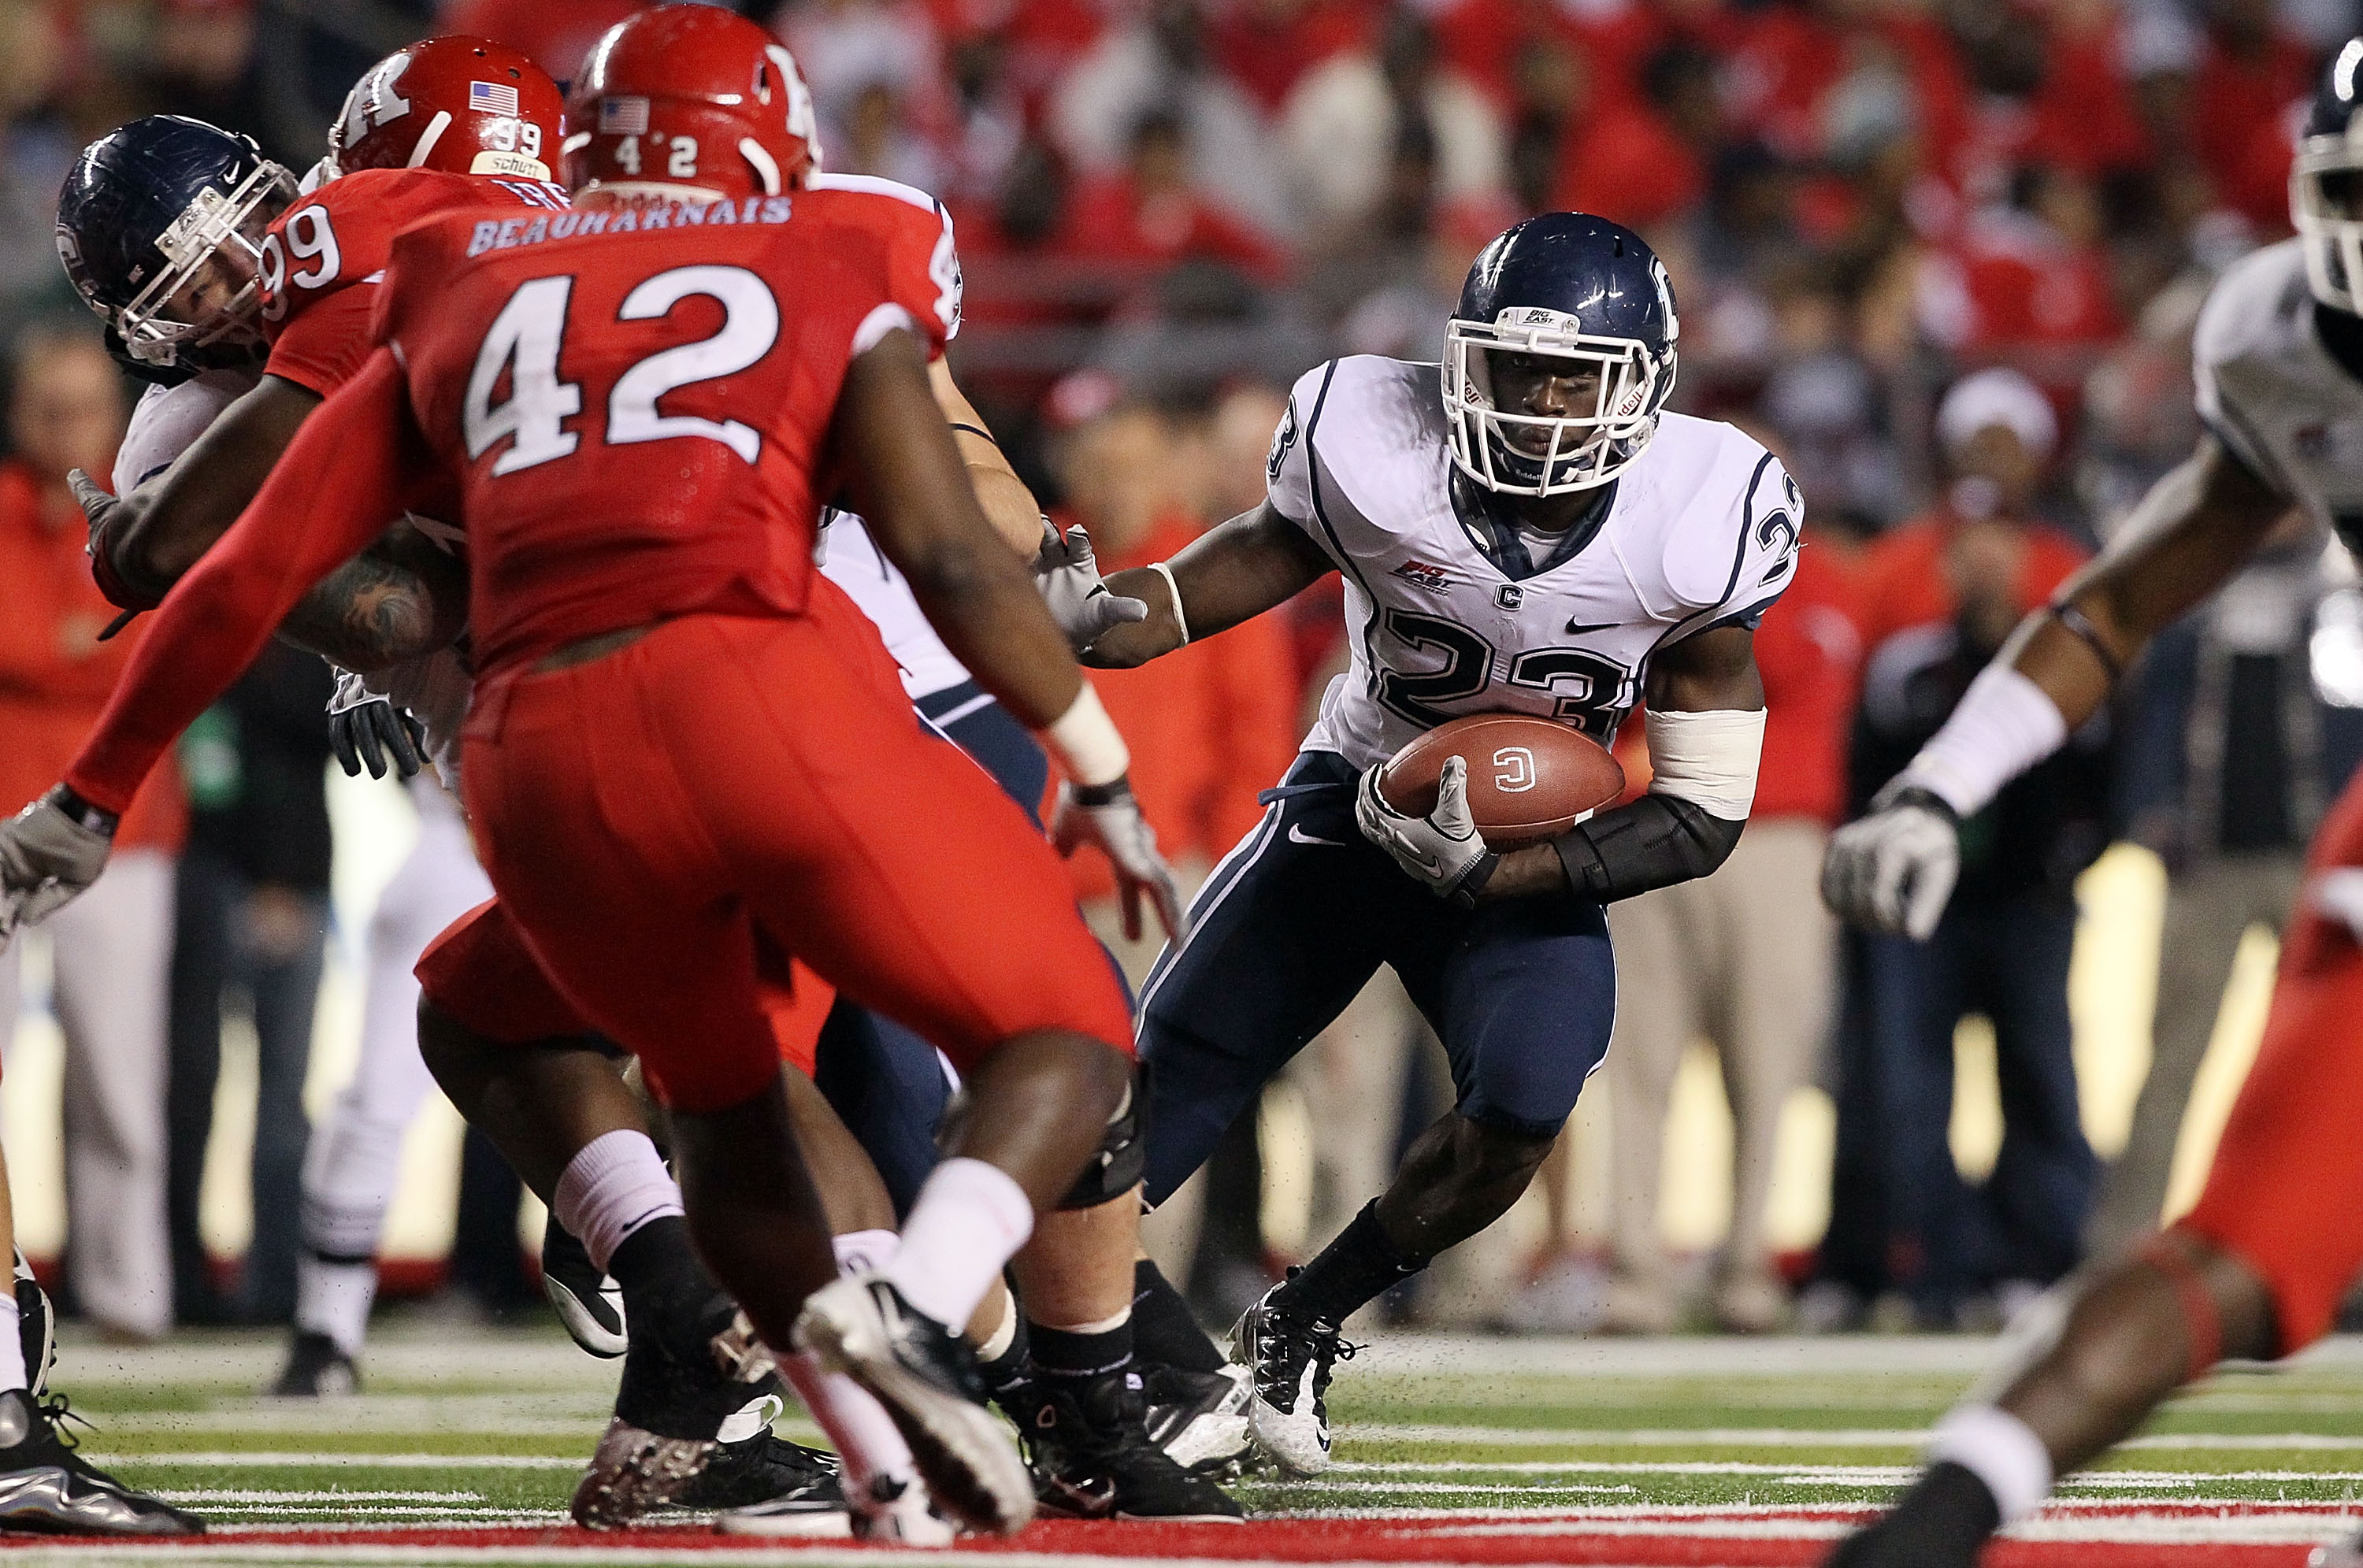 PISCATAWAY, NJ - OCTOBER 08:  Jordan Todman #23 of the Connecticut Huskies runs the ball against the Rutgers Scarlet Knights at Rutgers Stadium on October 8, 2010 in Piscataway, New Jersey. Rutgers defeated UConn 27-24.  (Photo by Jim McIsaac/Getty Images